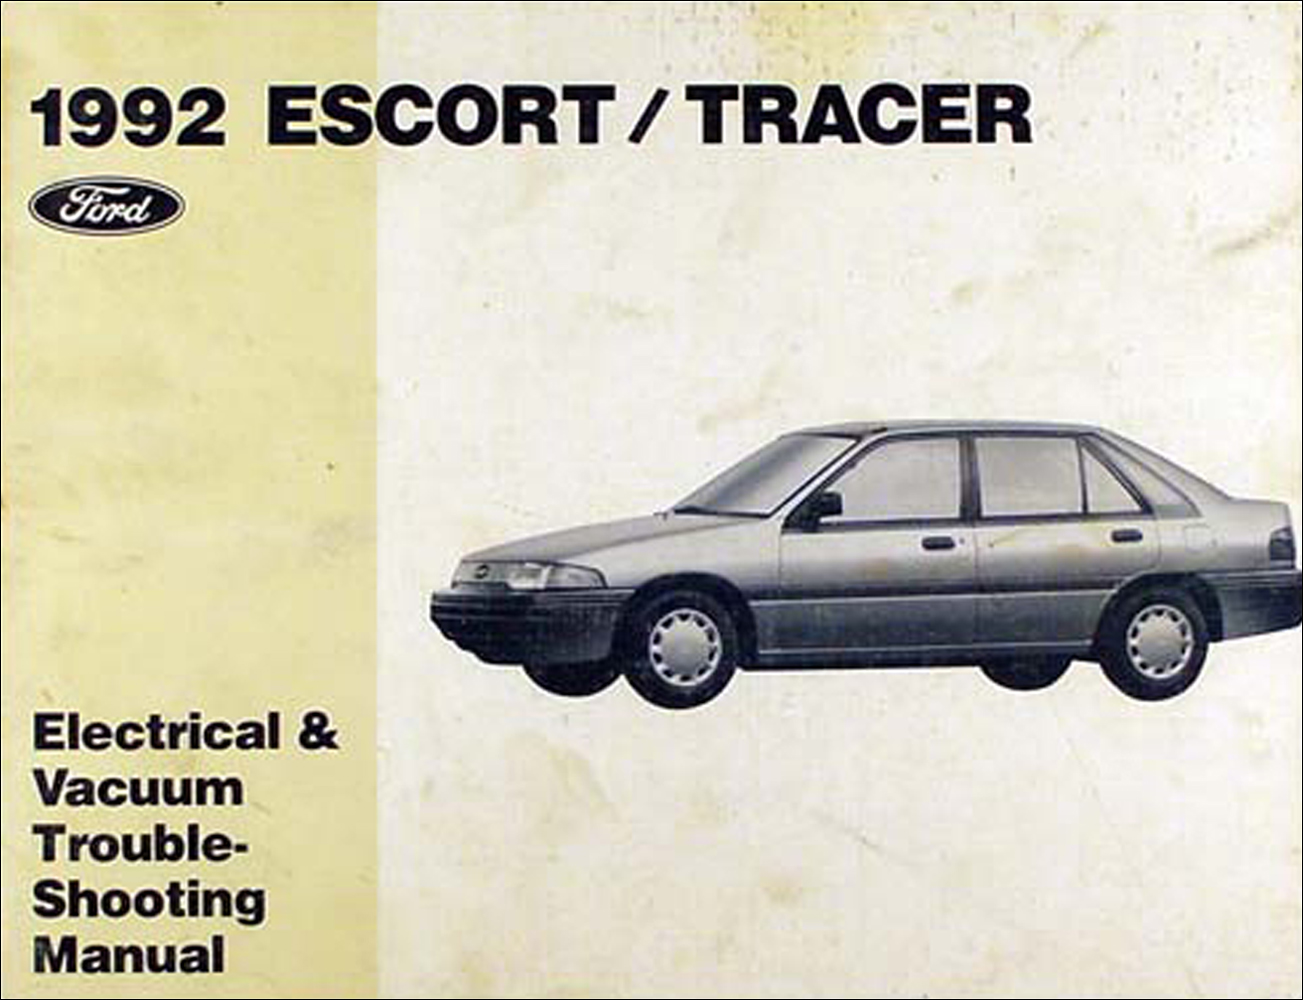 1992FordEscortTracerEVTMUnmarked  Mercury Tracer Wiring Diagram on gs sedan, gs red, front brake springs, breather preheater, wagon back, brake light issue, ls fuel pump amperage, alternator replacement, plenum heater, exhaust system, pcv system, front suspension,